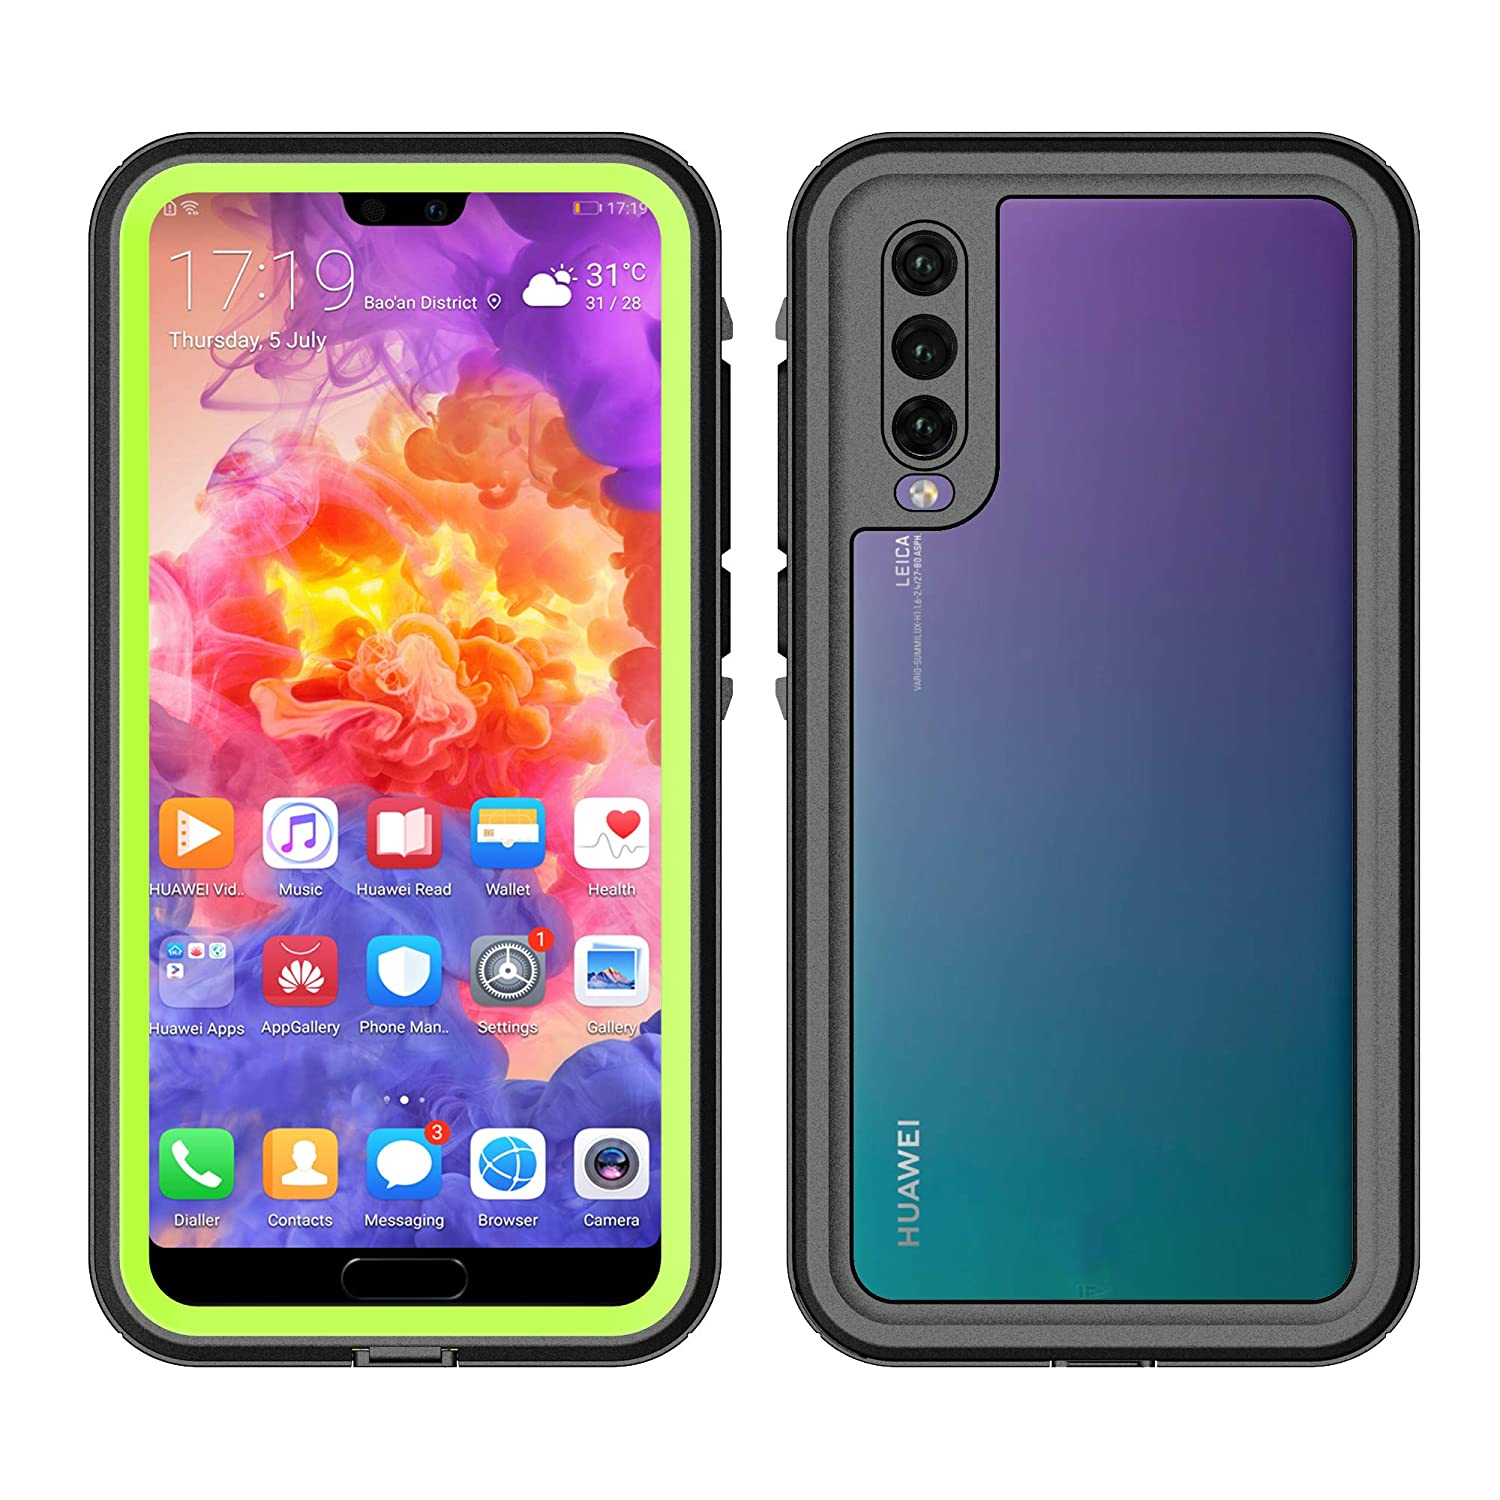 3C-LIFE P20-compatible Armor Case Waterproof Shockproof Dustproof Heavy Duty Full Body Protective Case for HuaweiP20 Pro Black